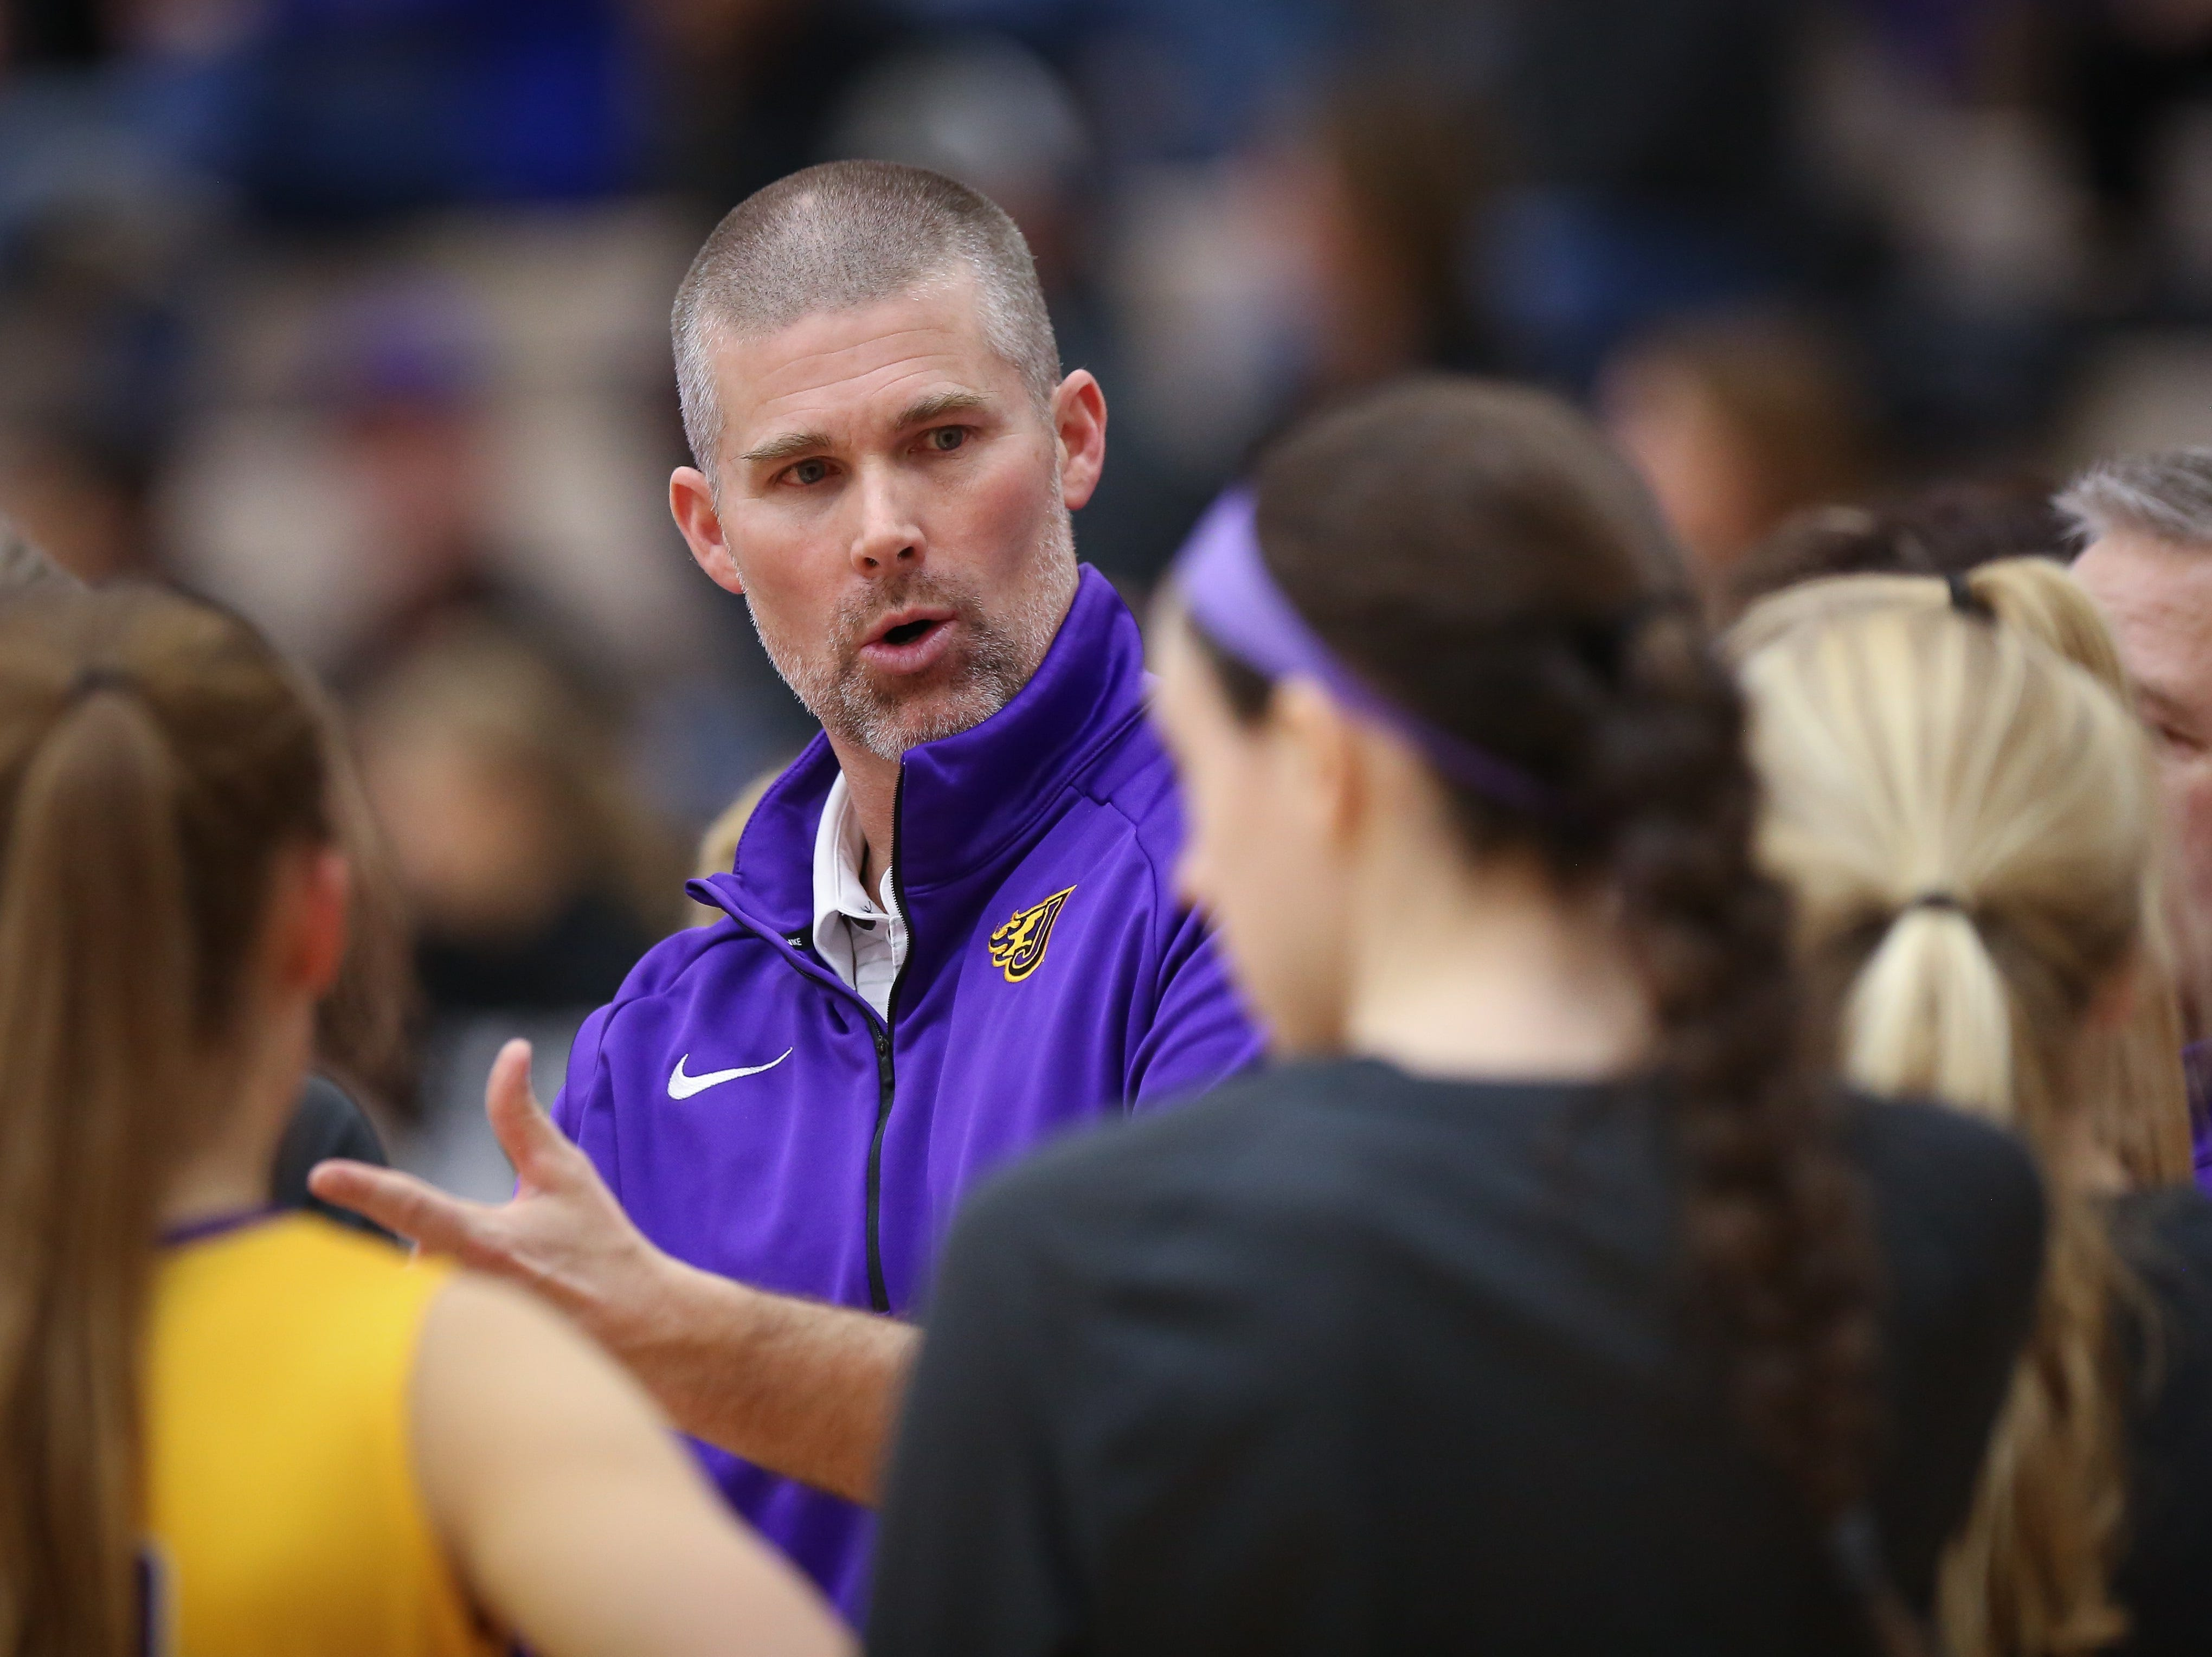 Johnston head coach Chad Jilek gives instructions to his players during a girls high school basketball game between the Johnston Dragons and the Urbandale J-Hawks at Urbandale High School on Dec. 18, 2018 in Urbandale, Iowa.